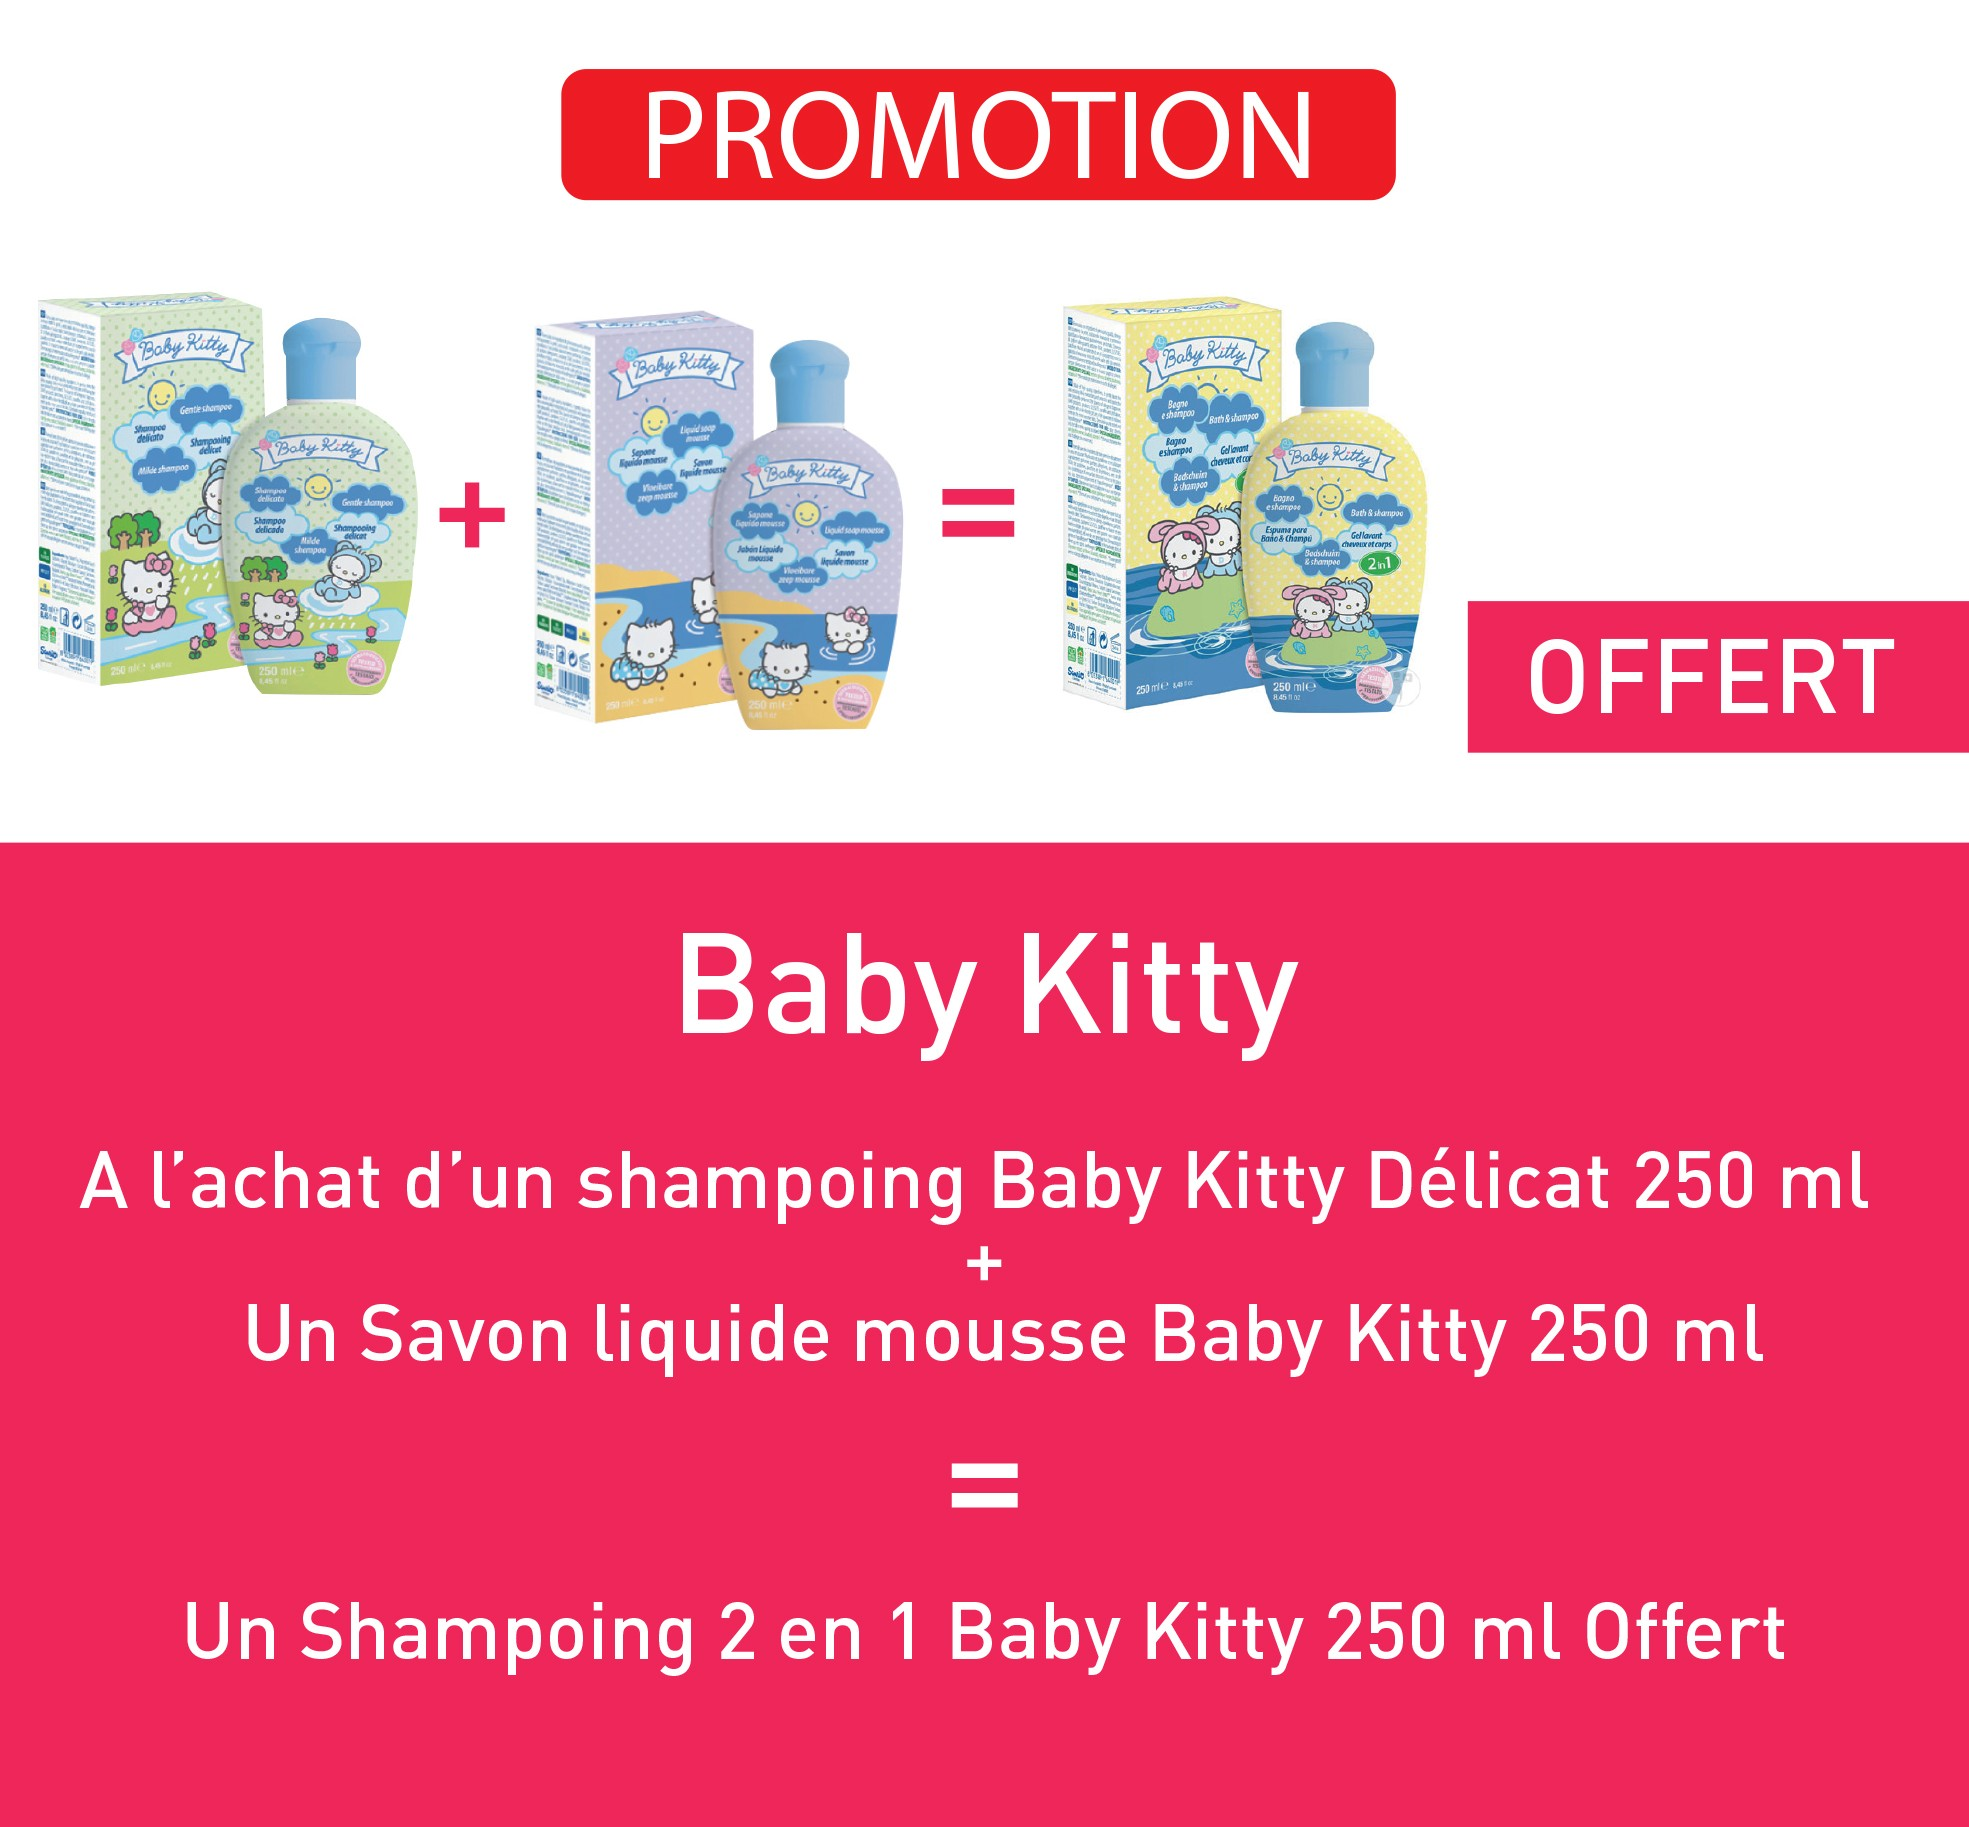 A l'achat d'un shampoing baby kitty délicat 250ml + Un savon liquide mousse baby kitty 250ml = Un shampoing 2en1 baby kitty 250ml offert